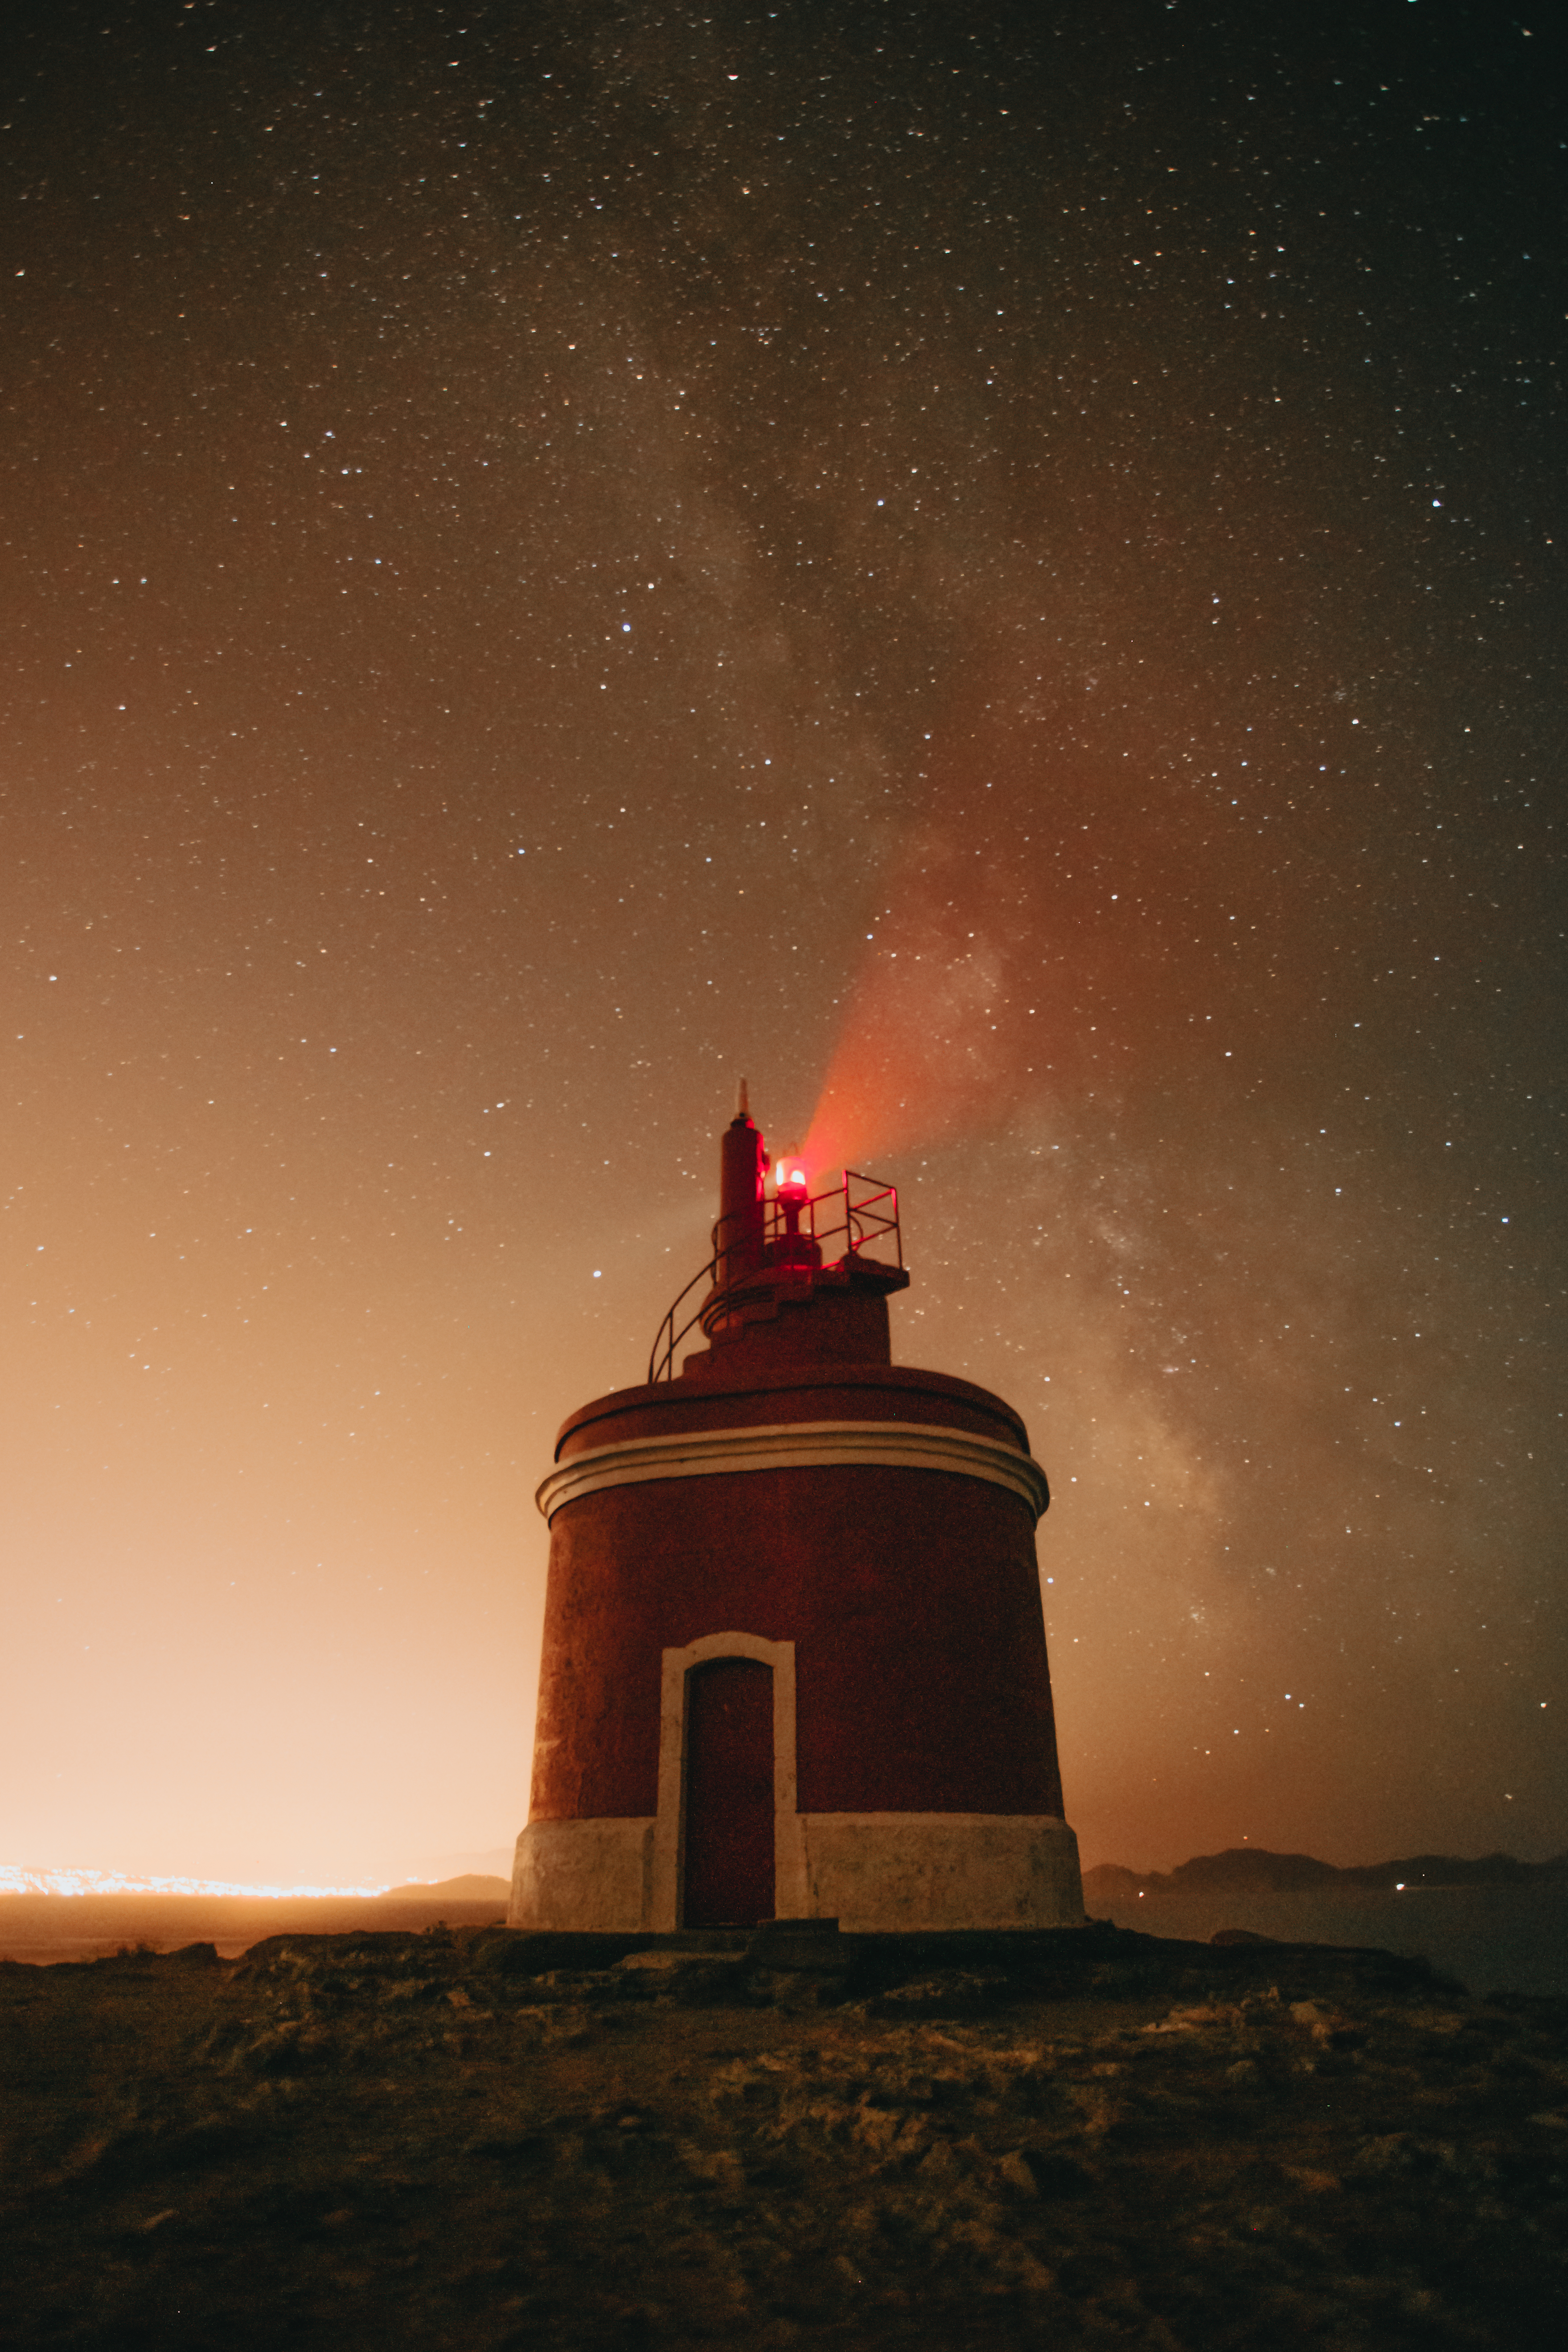 A horizontal shot of a lighthouse during the night